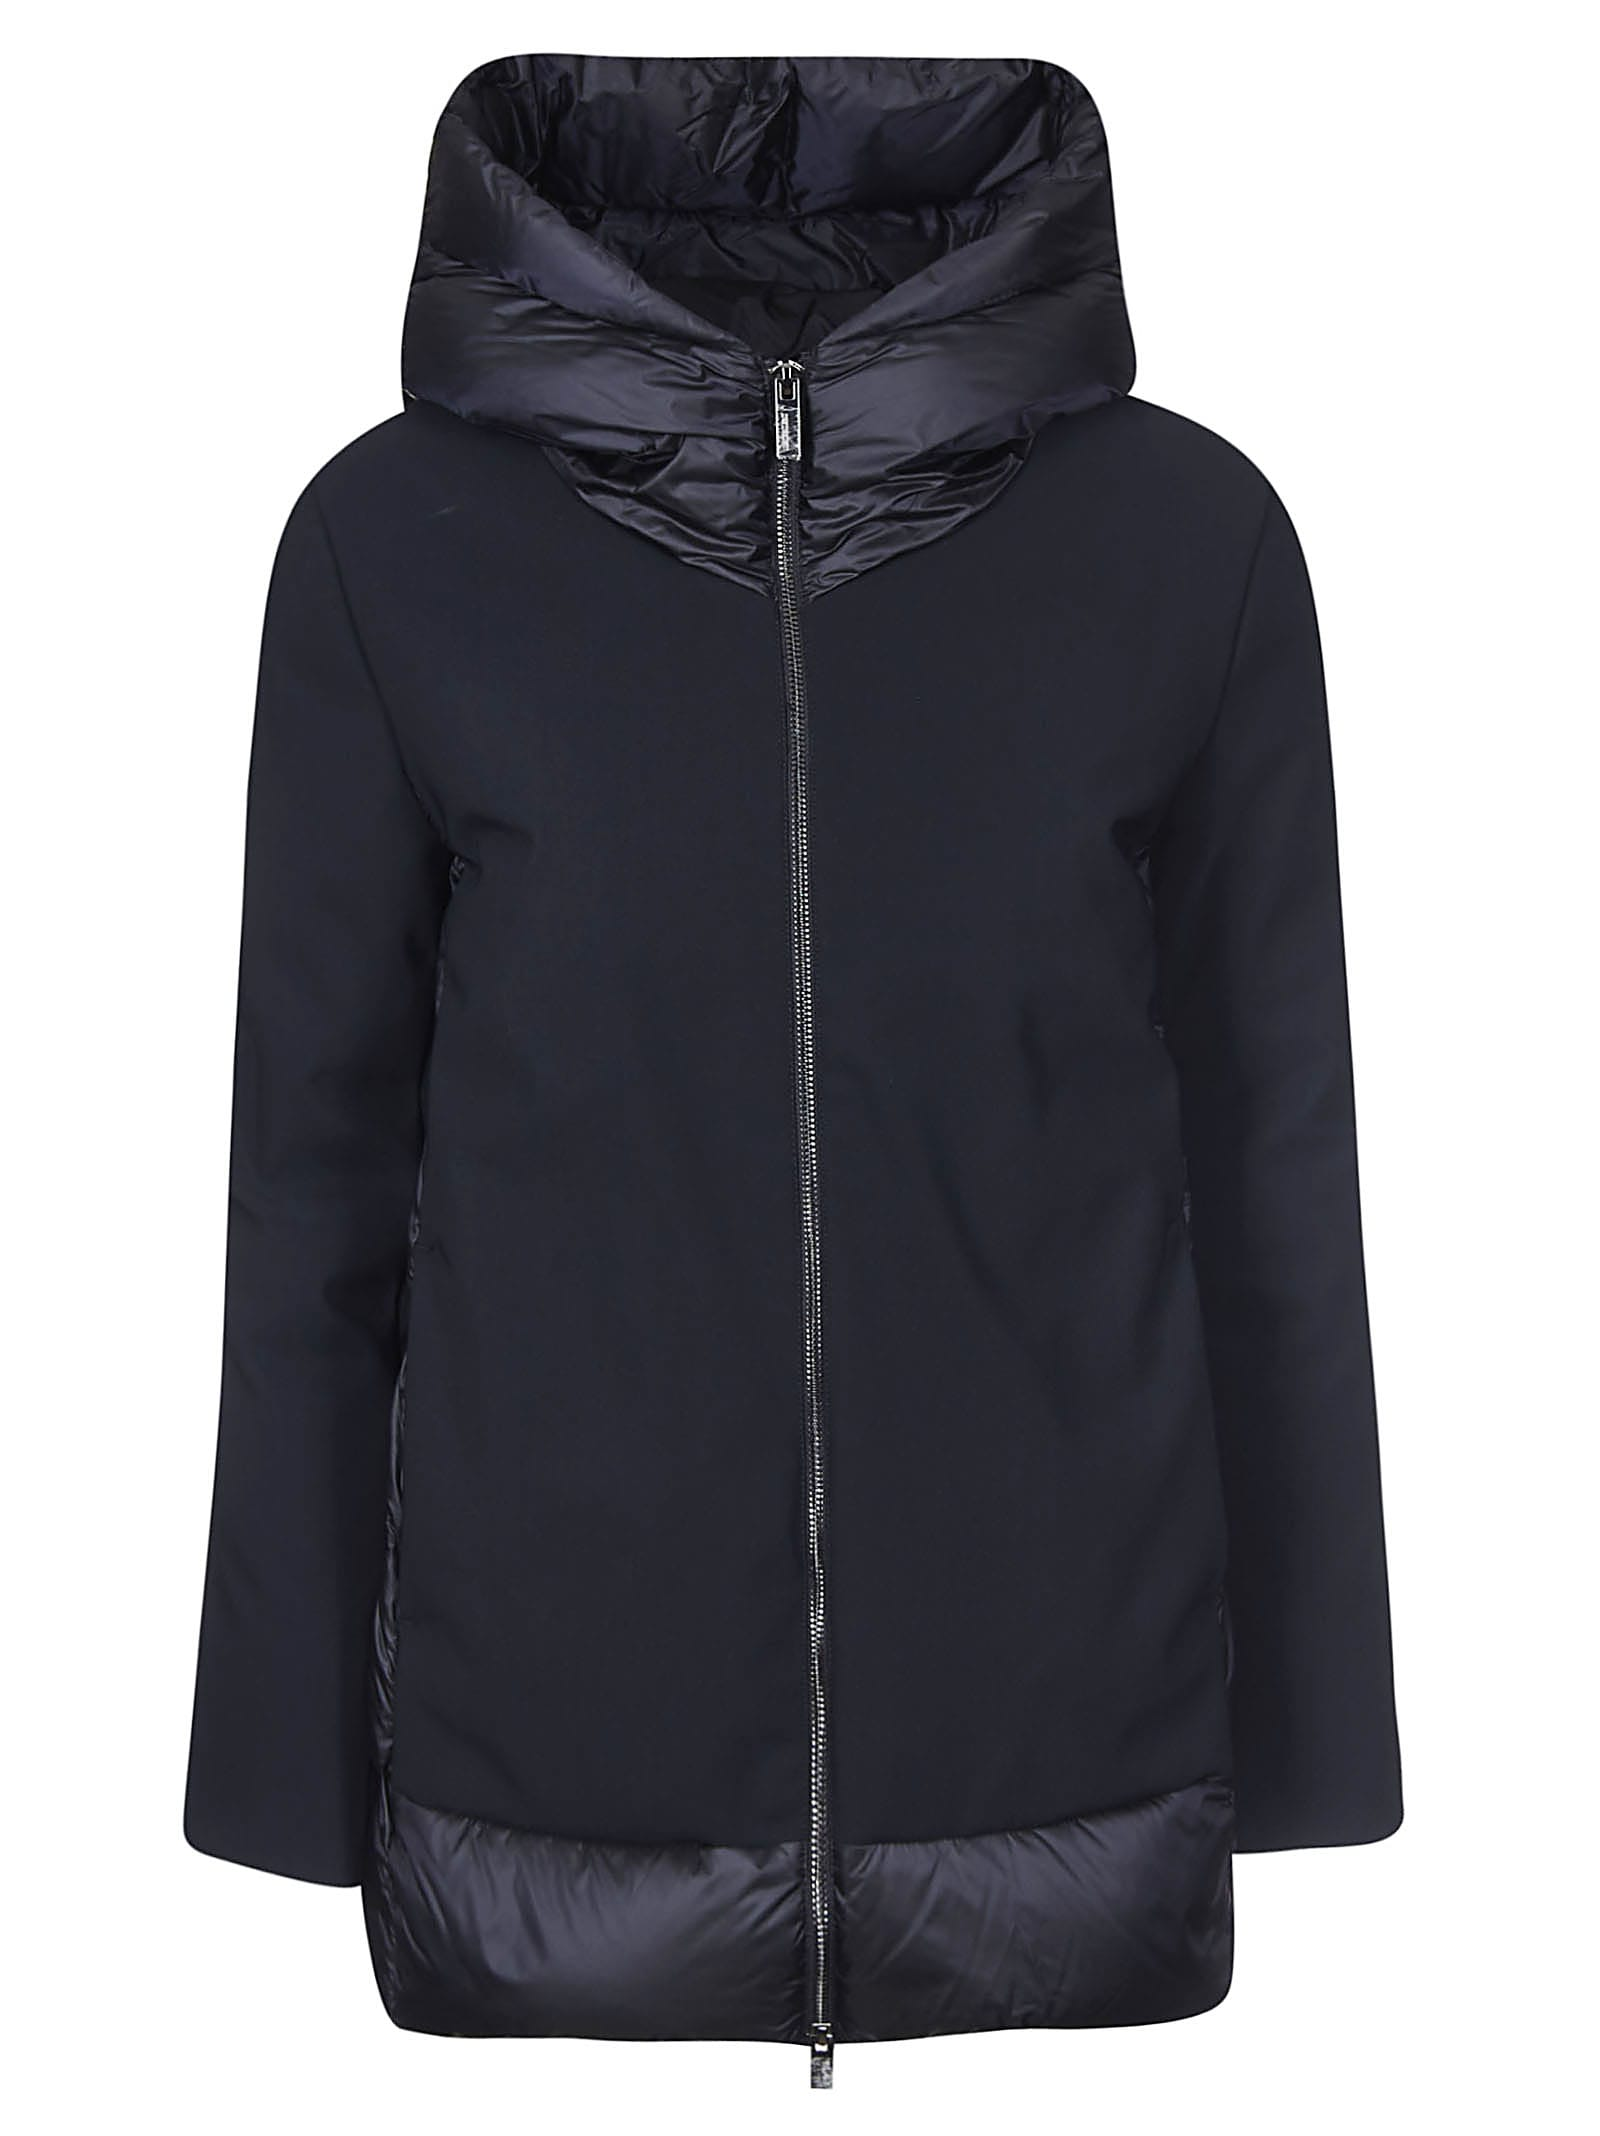 RRD - Roberto Ricci Design Back Padded Detail Hooded Jacket